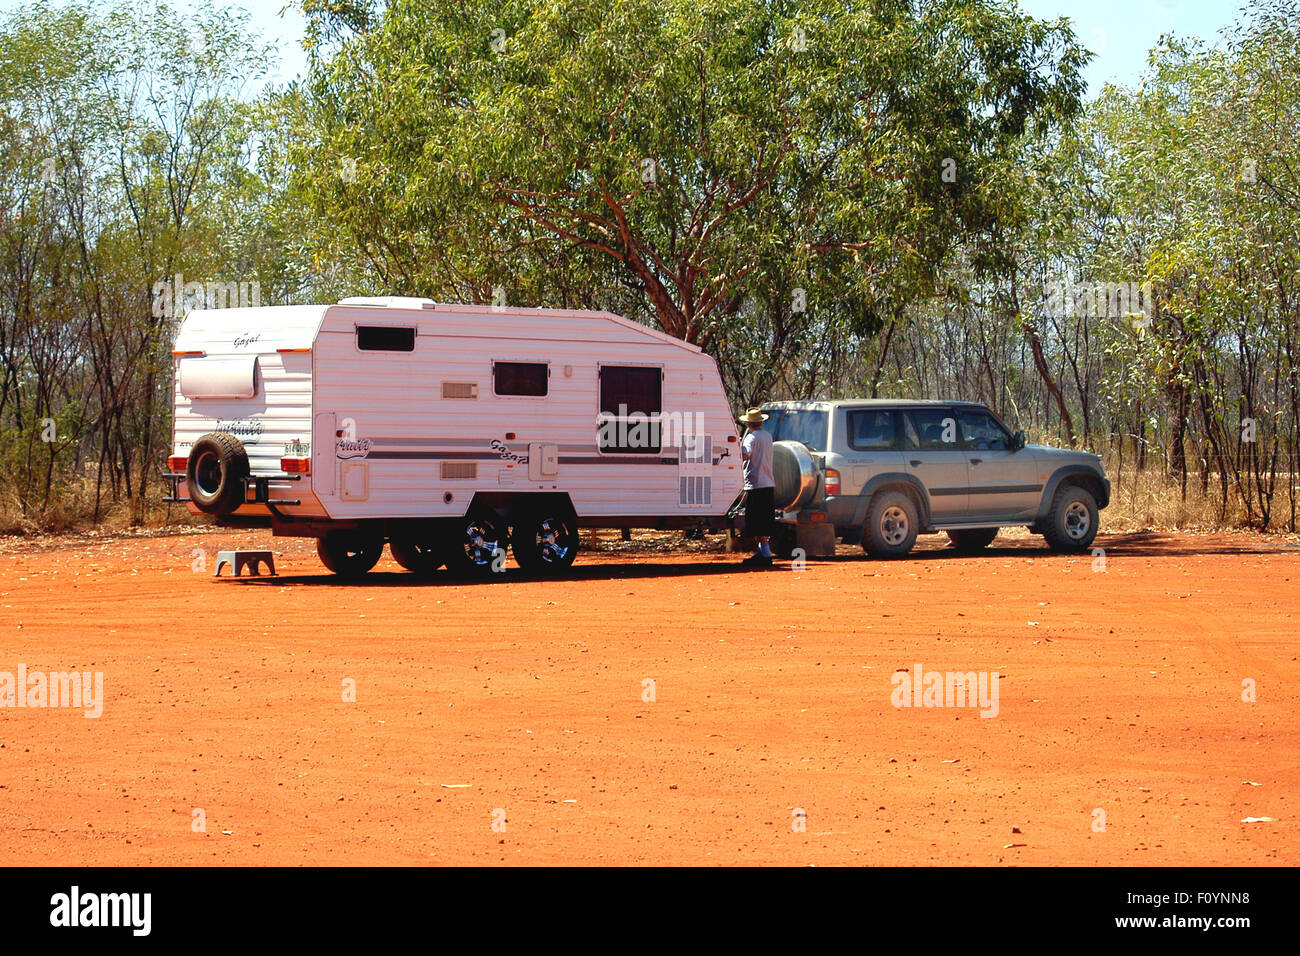 FOUR-WHEEL DRIVE AND CARAVAN, ROAD STOP IN OUTBACK WESTERN AUSTRALIA - Stock Image